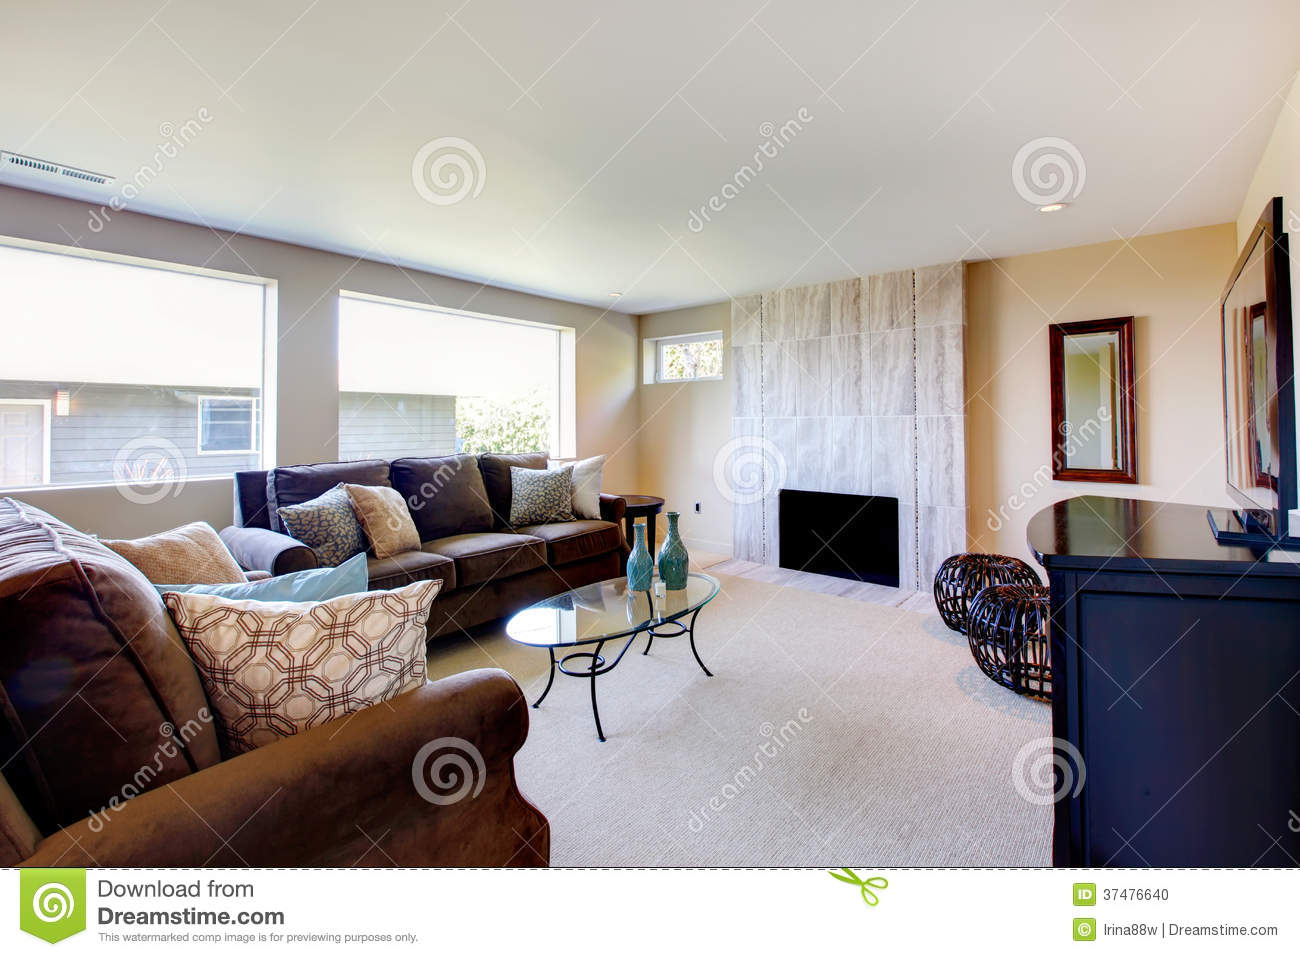 Bright ivory and brown living room stock photo image for Ivory couch living room ideas